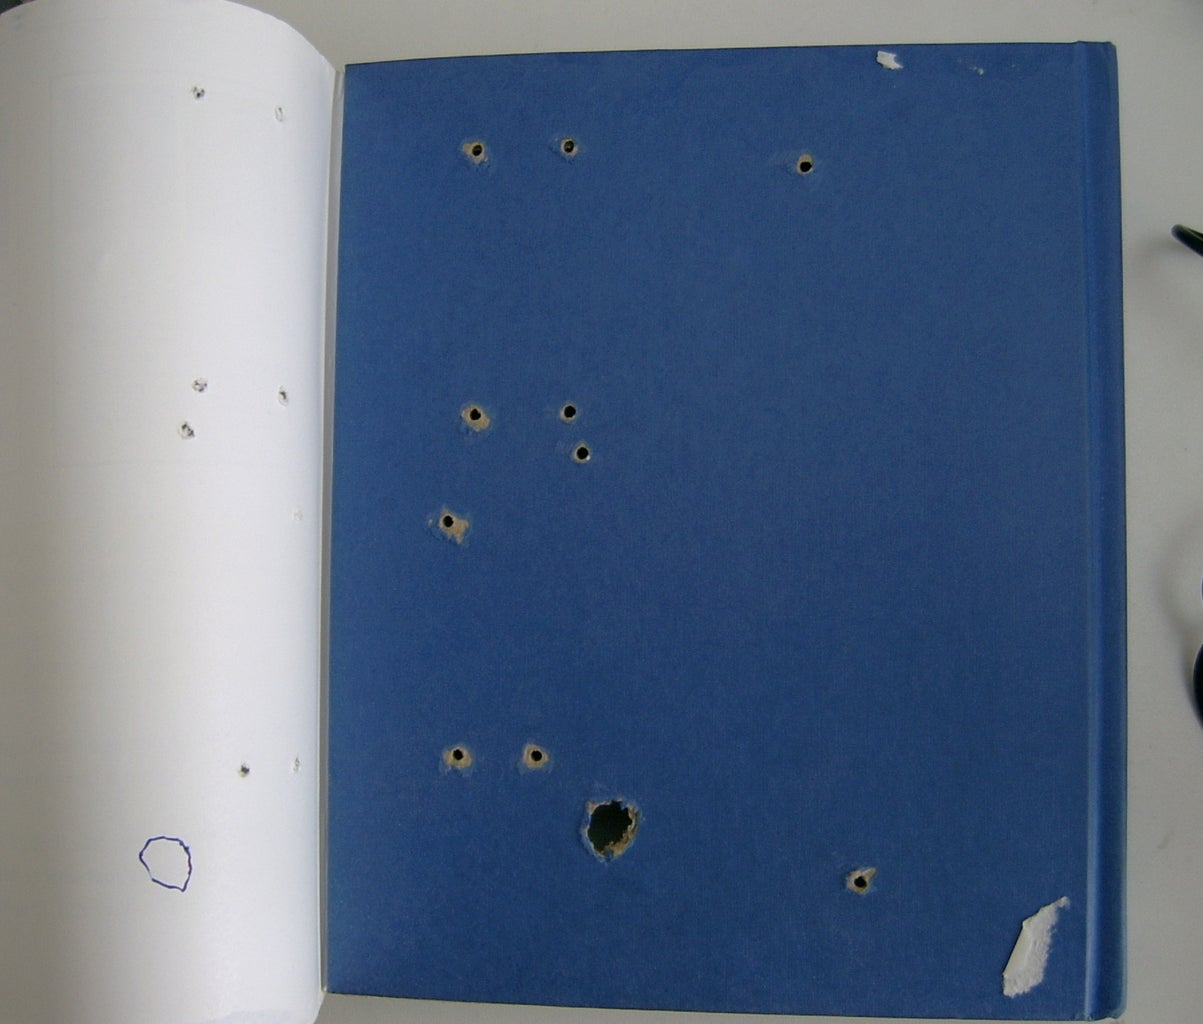 Holes for Attaching Circuit Boards